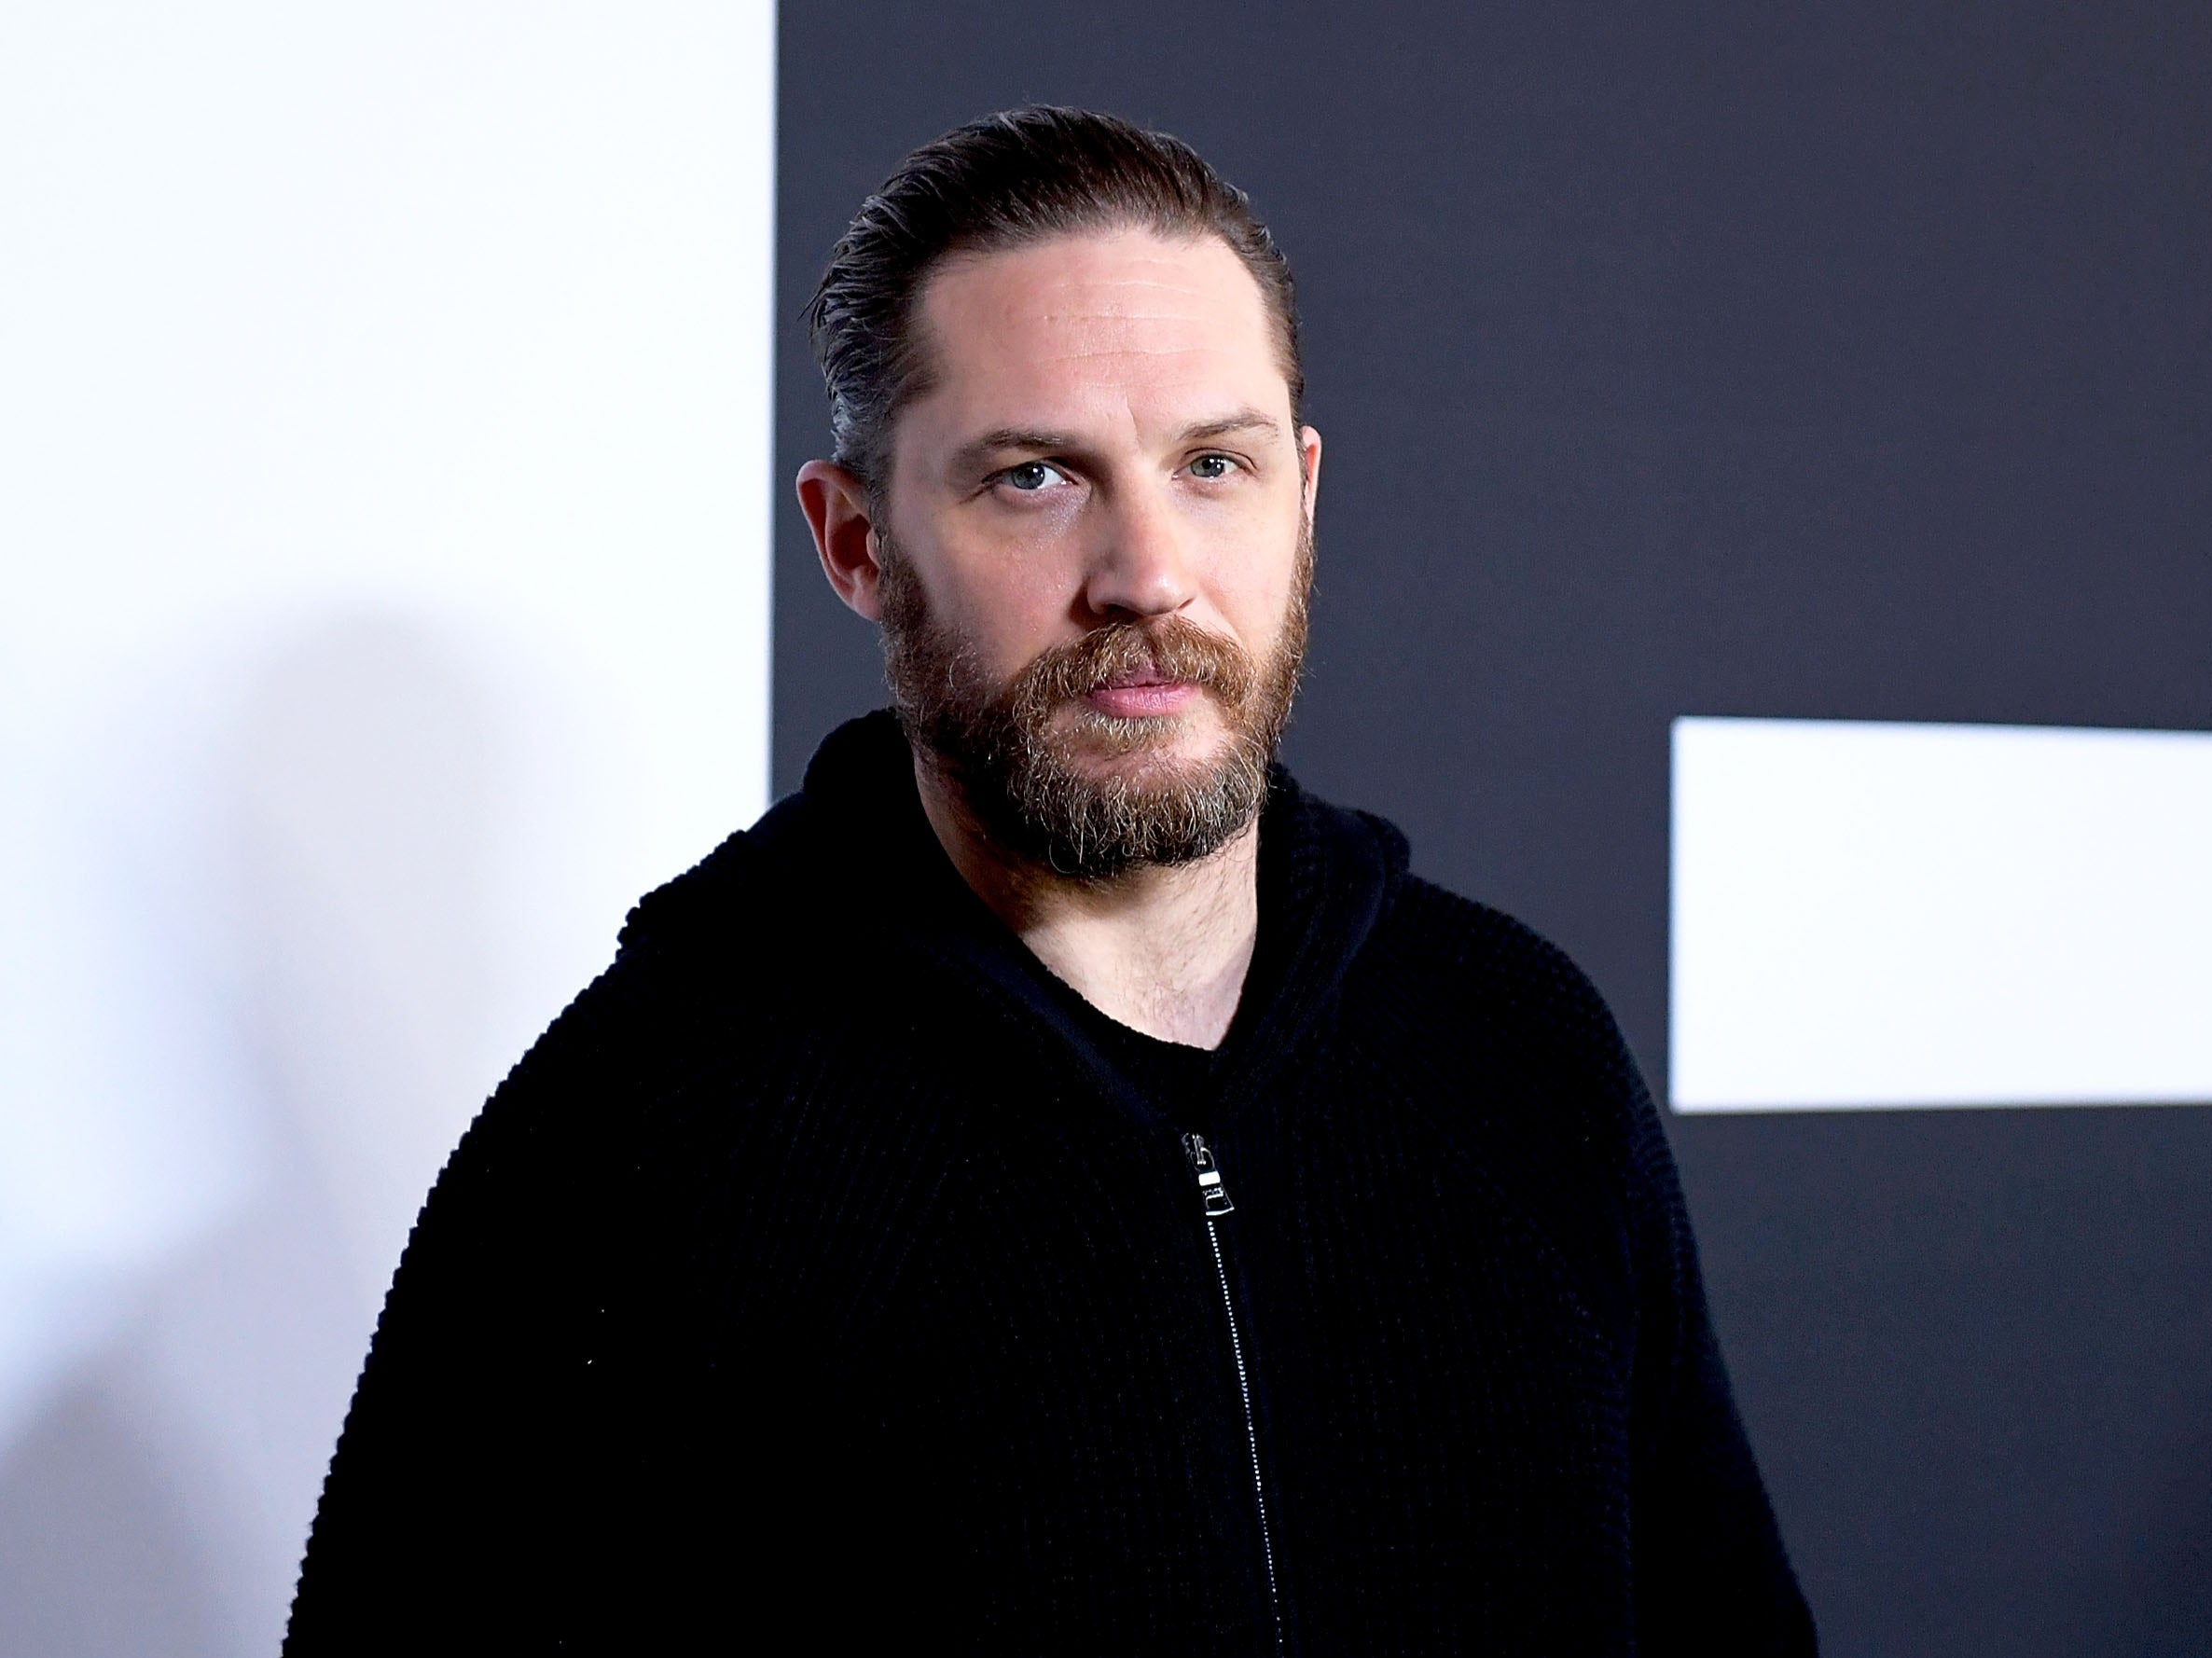 What has Tom Hardy said about playing James Bond?